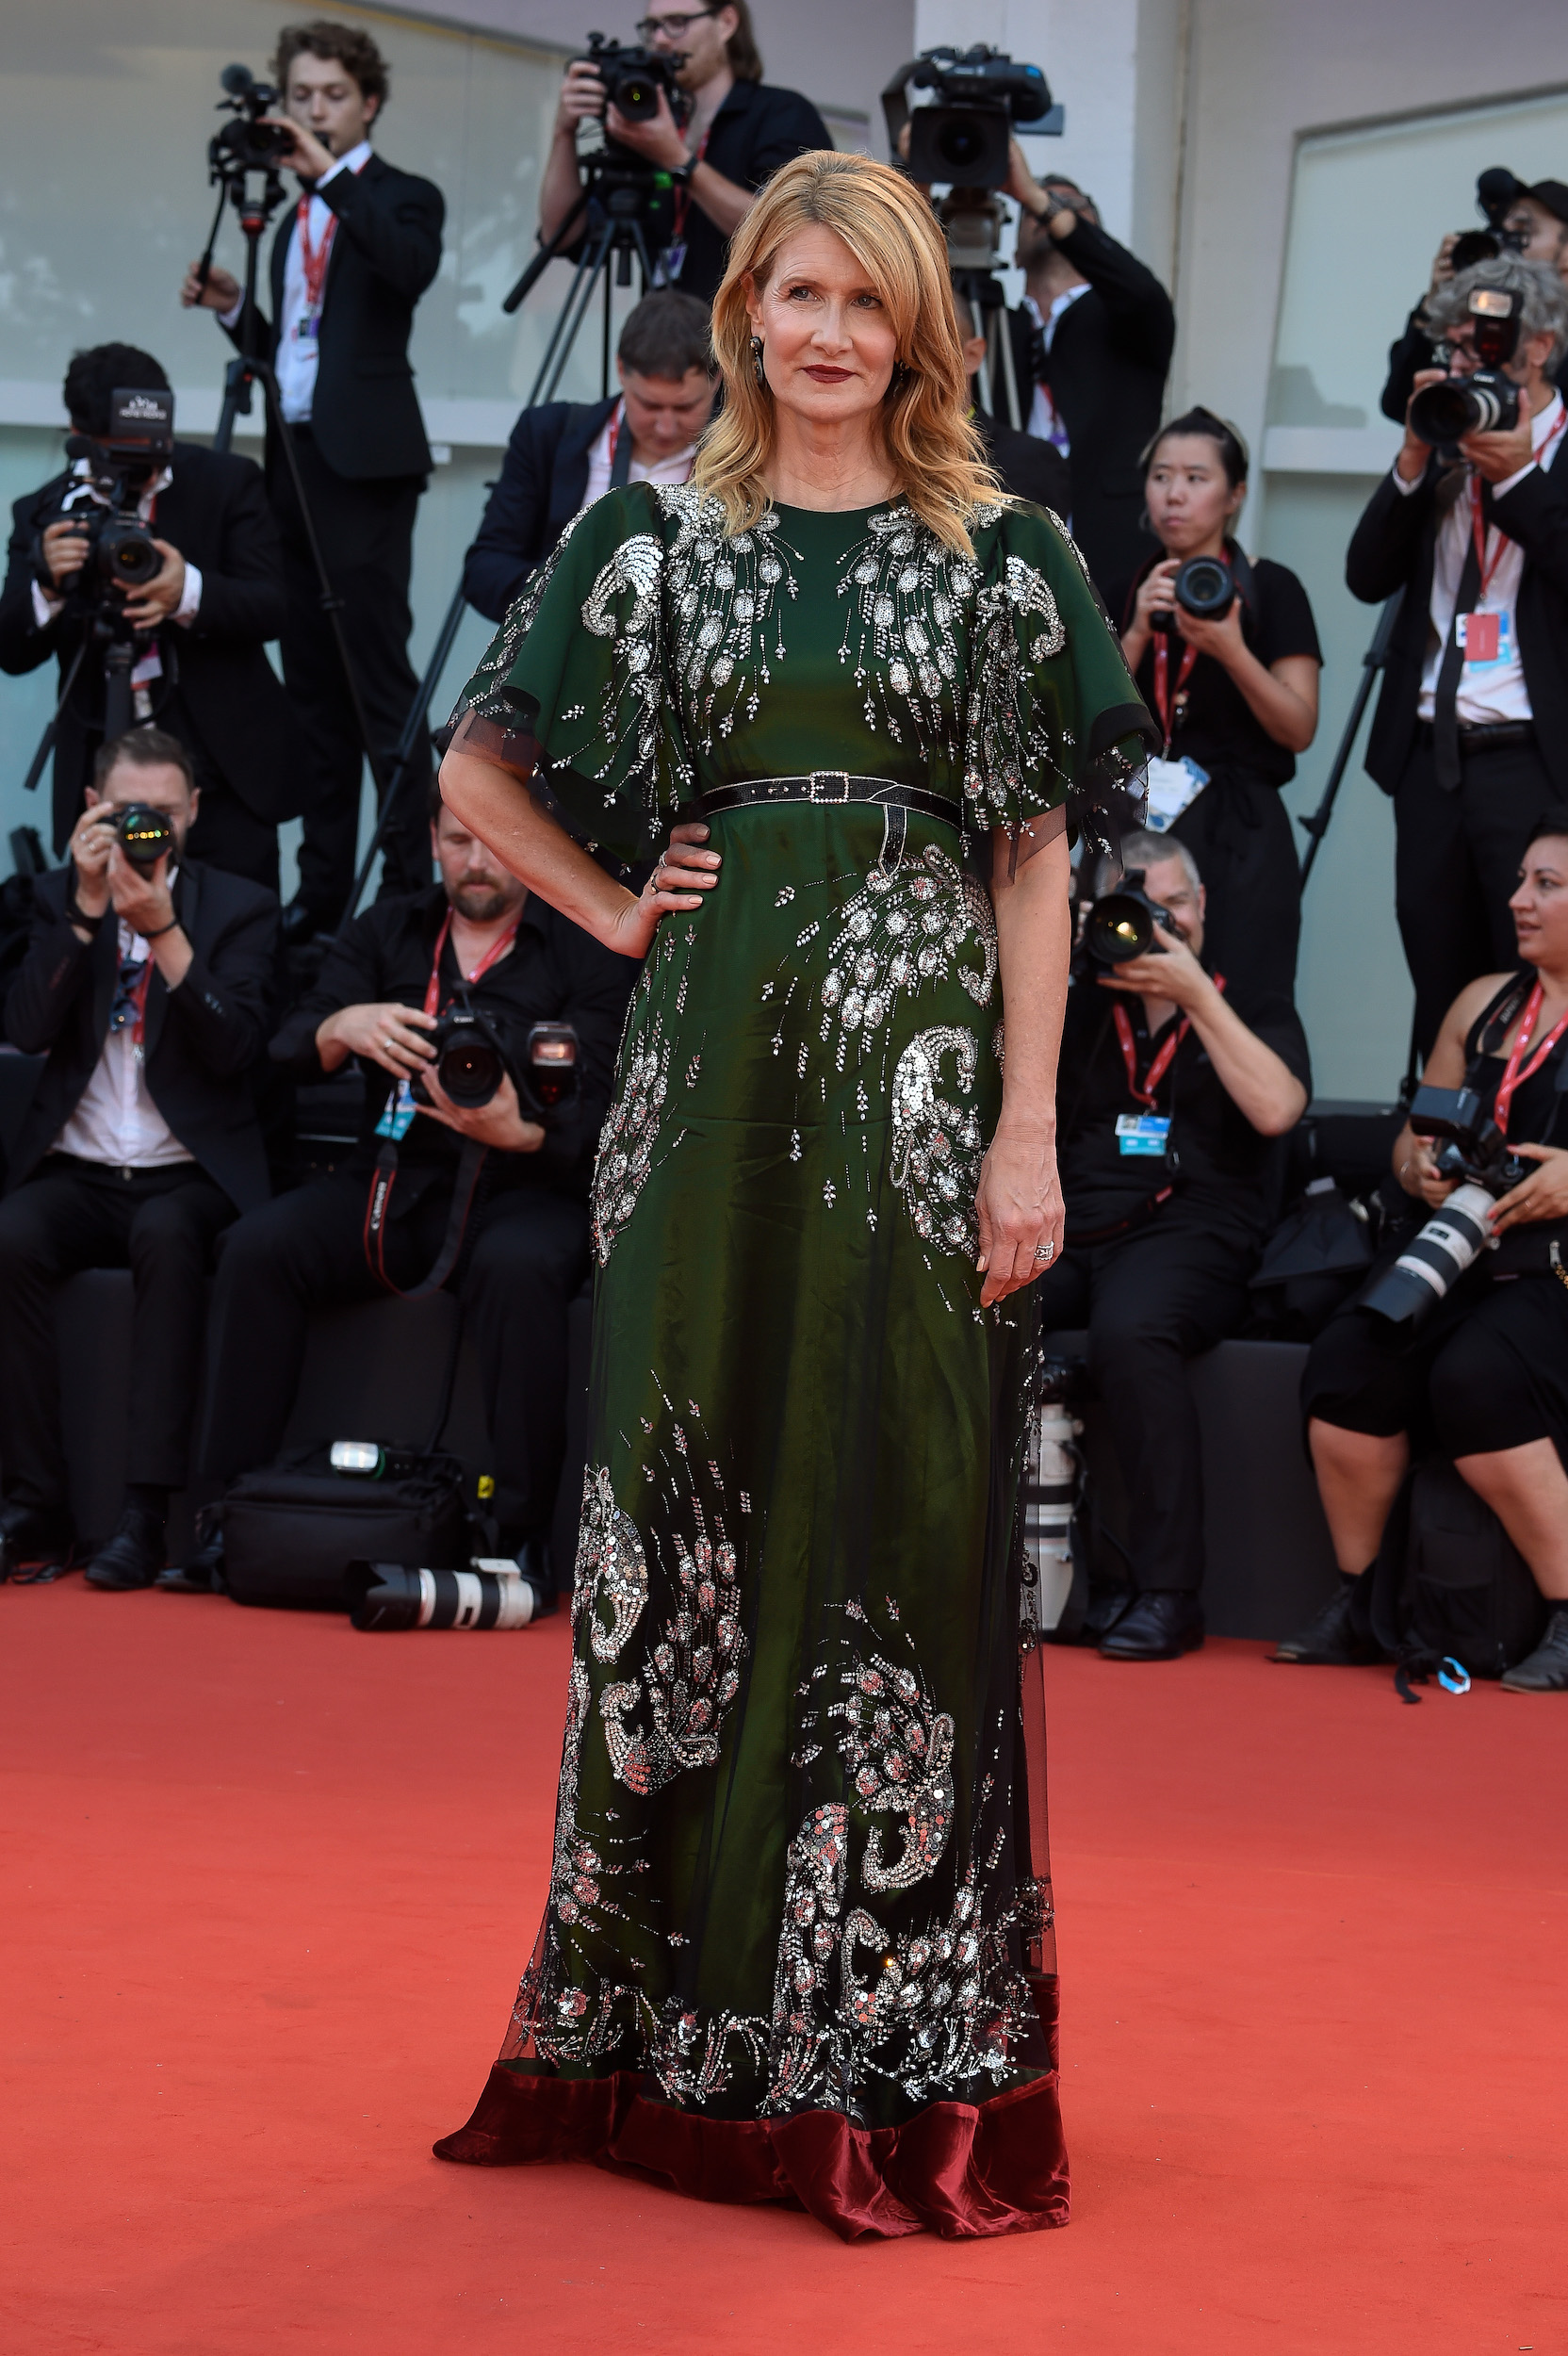 Laura Dern at the 76 Venice International Film Festival 2019. Marriage Story red carpet. Venice (Italy), August 29th, 2019 (Photo by Marilla Sicilia/Archivio Marilla Sicilia/Mondadori Portfolio via Getty Images)